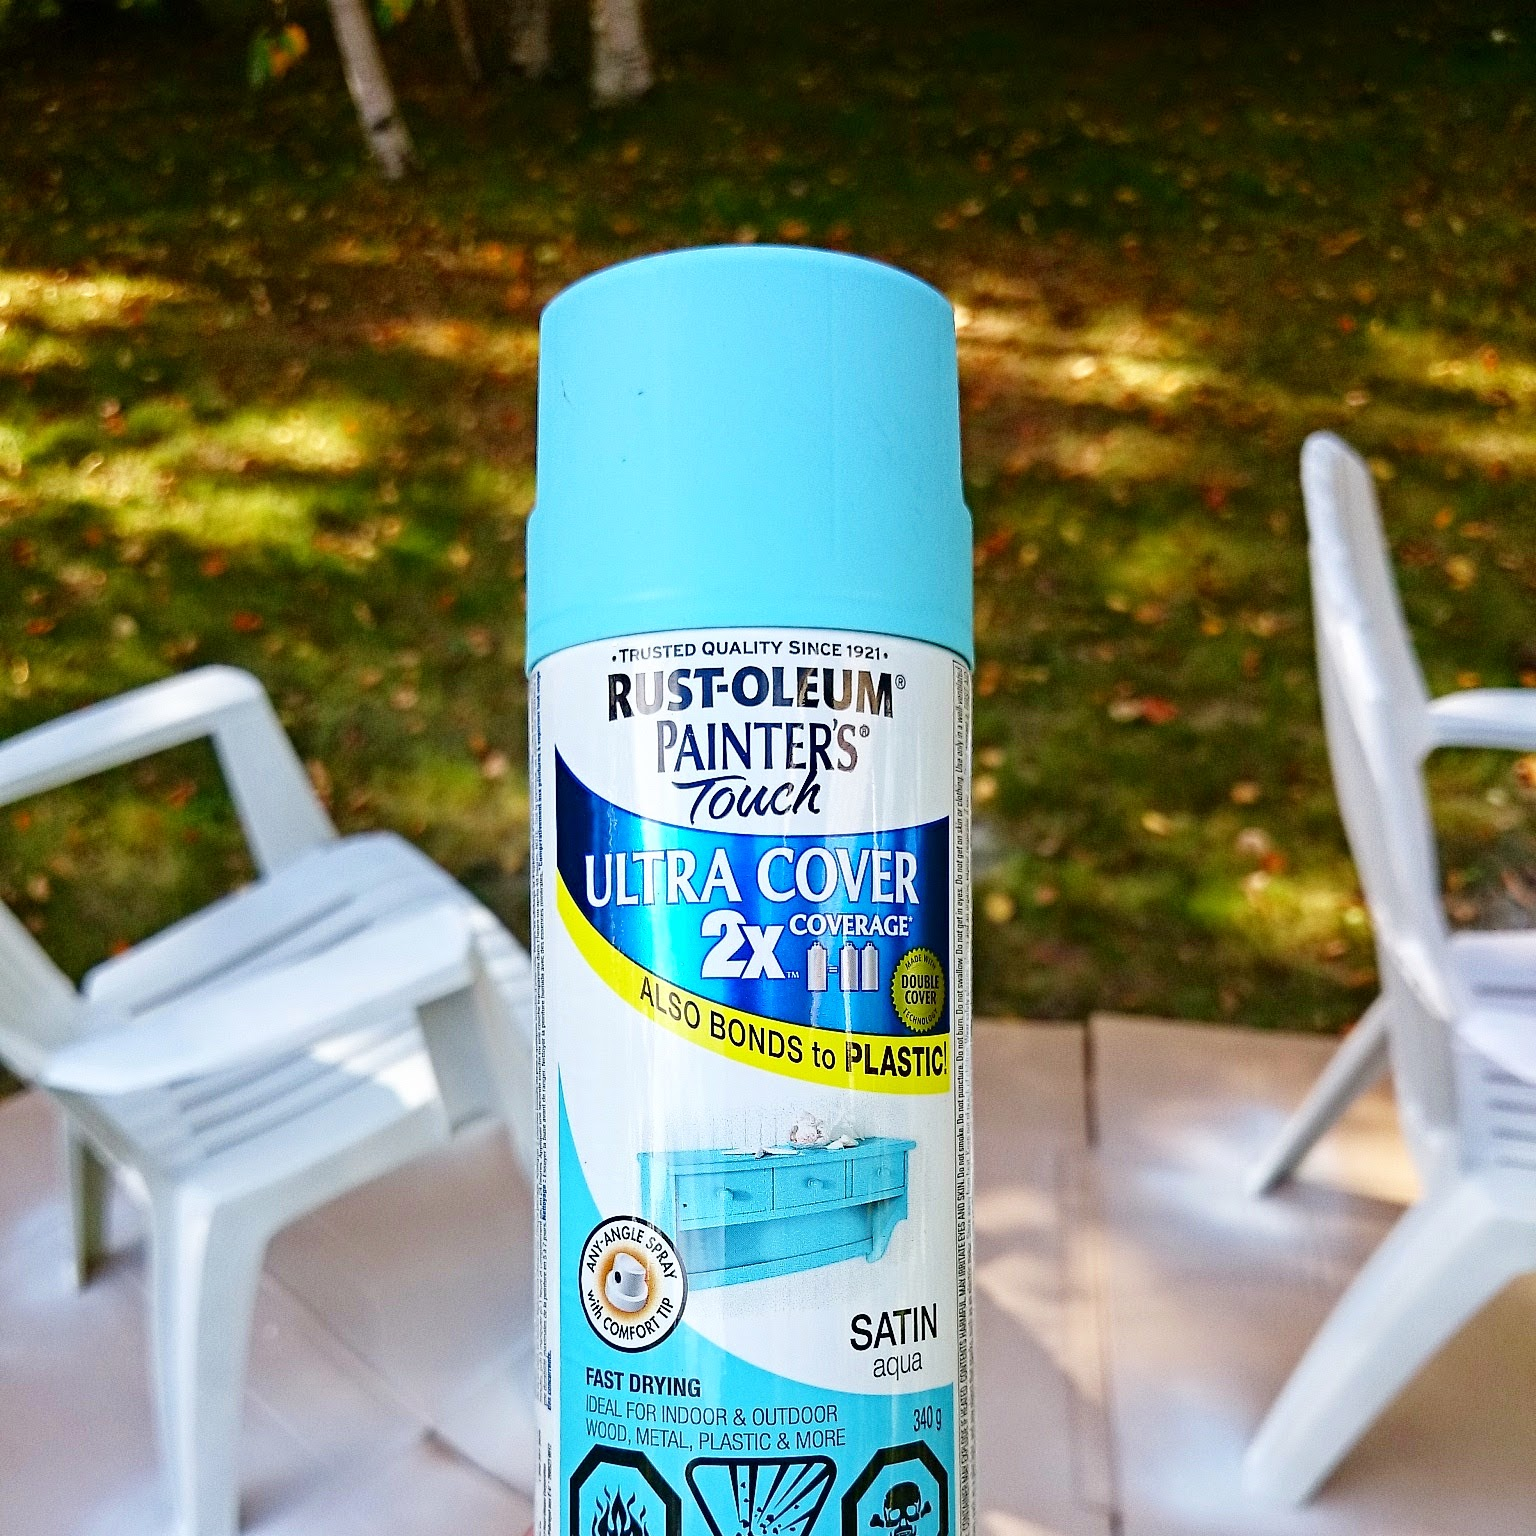 Review of Rust-Oleum Spray Paint on Plastic